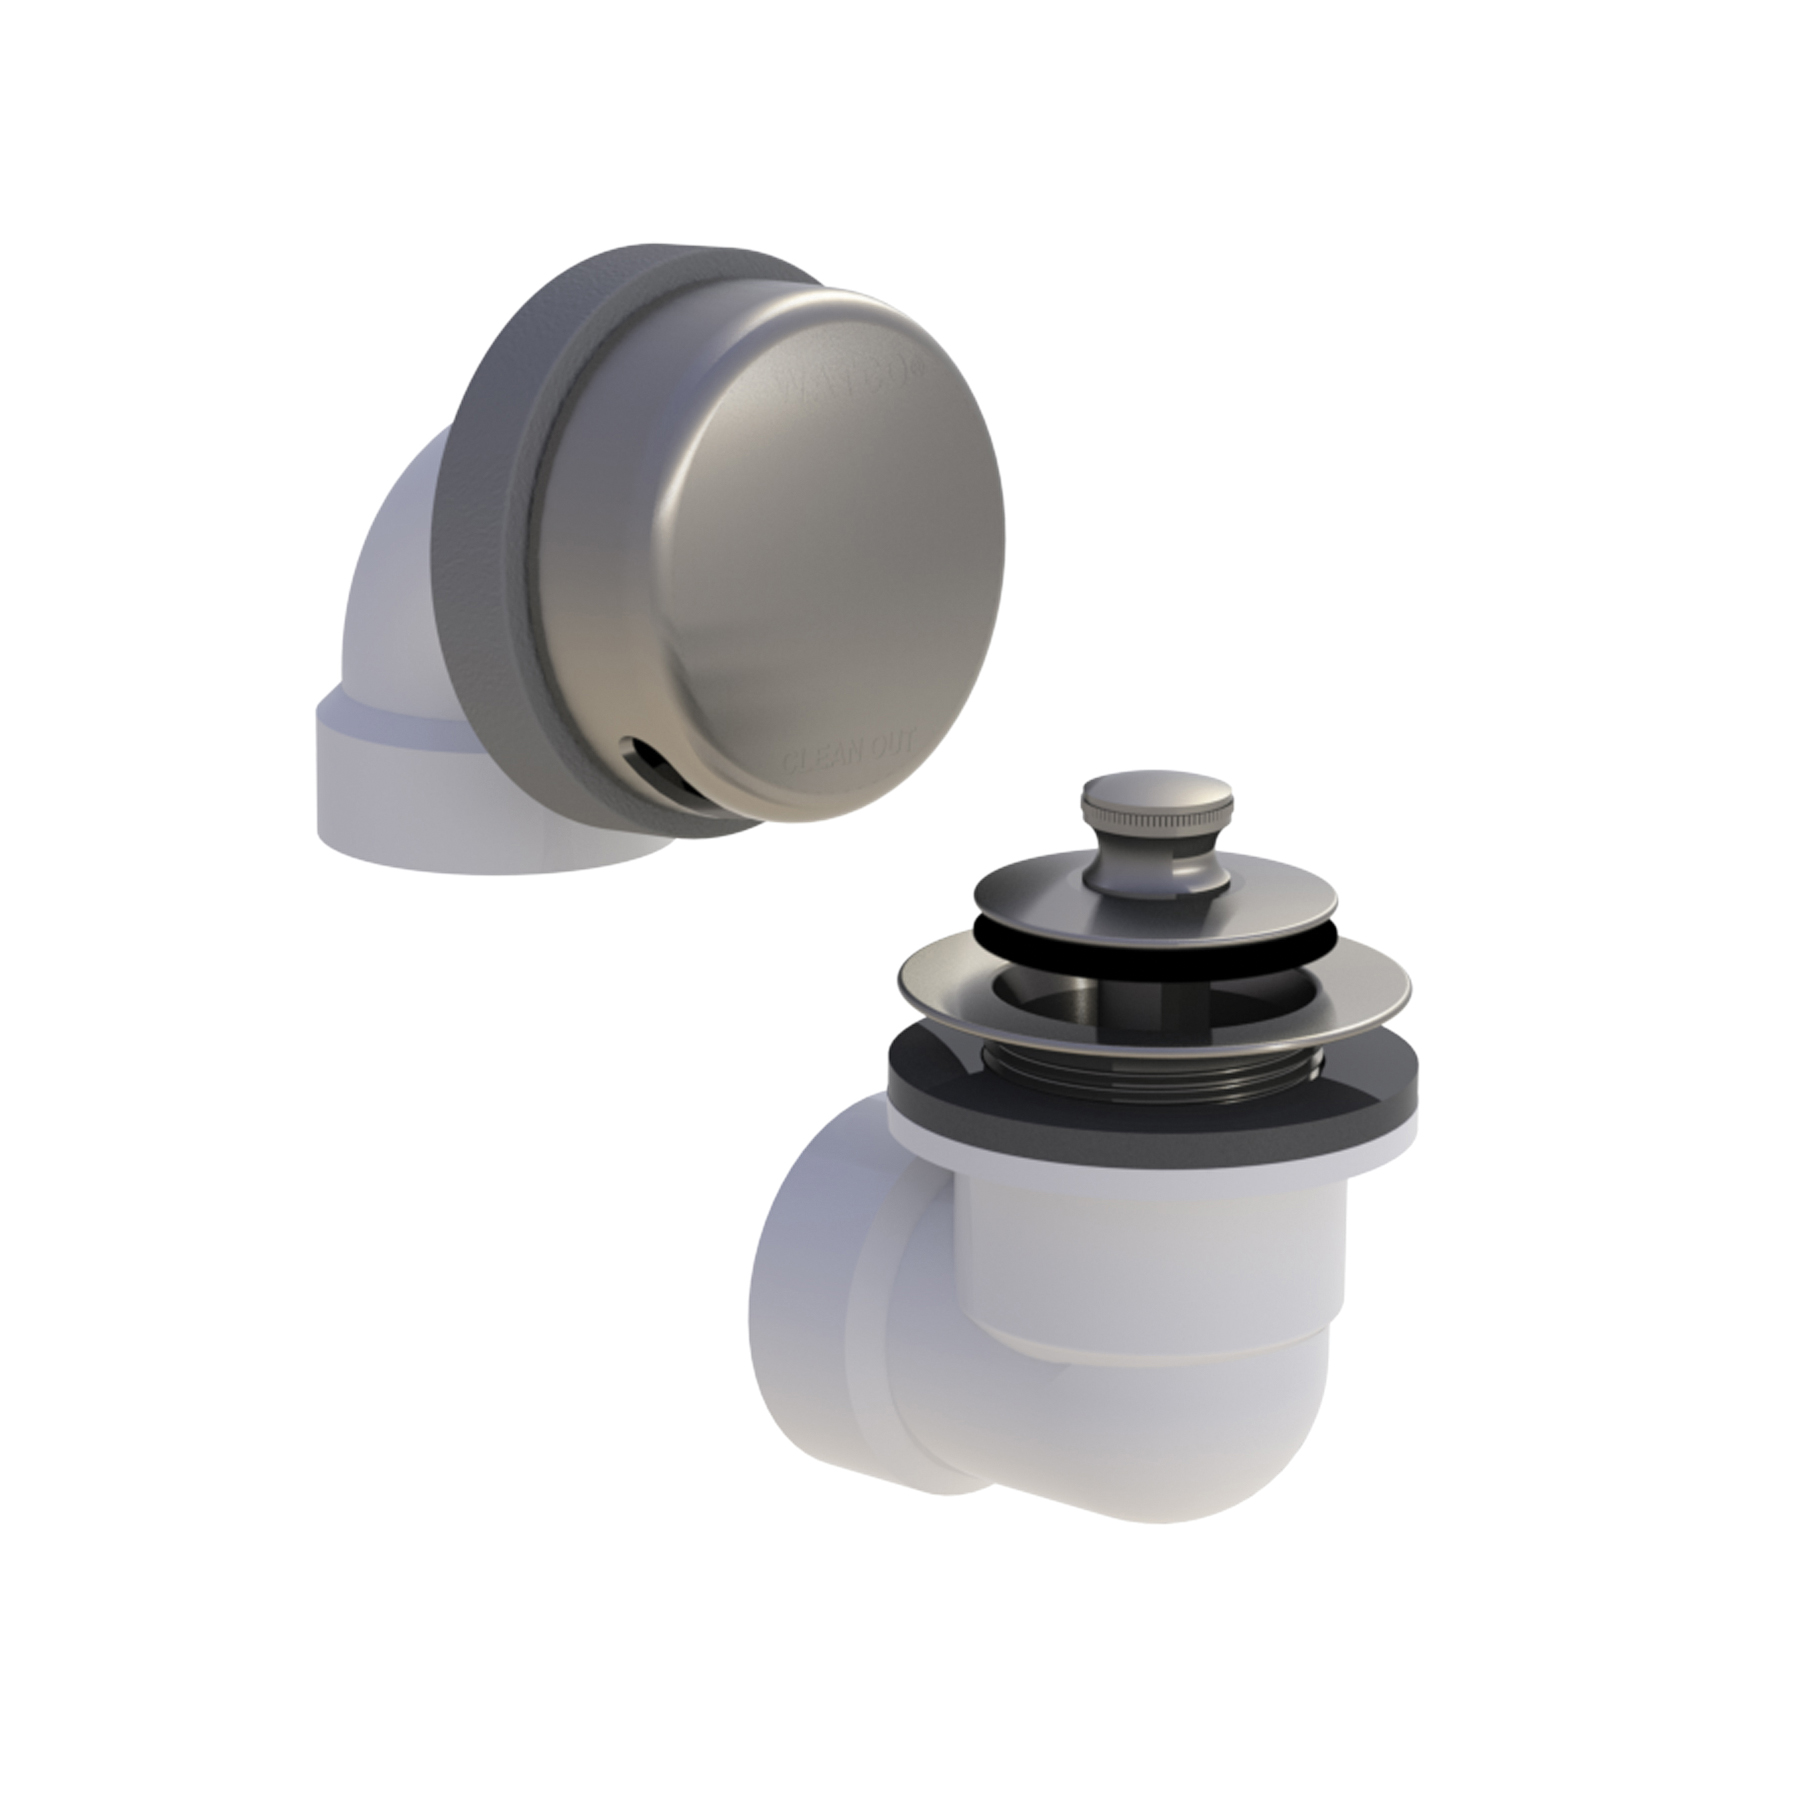 Watco® 901-LT-PVC-BN Innovator® 901 Bath Waste Half Kit With Brushed Nickel Lift and Turn Stopper, PVC